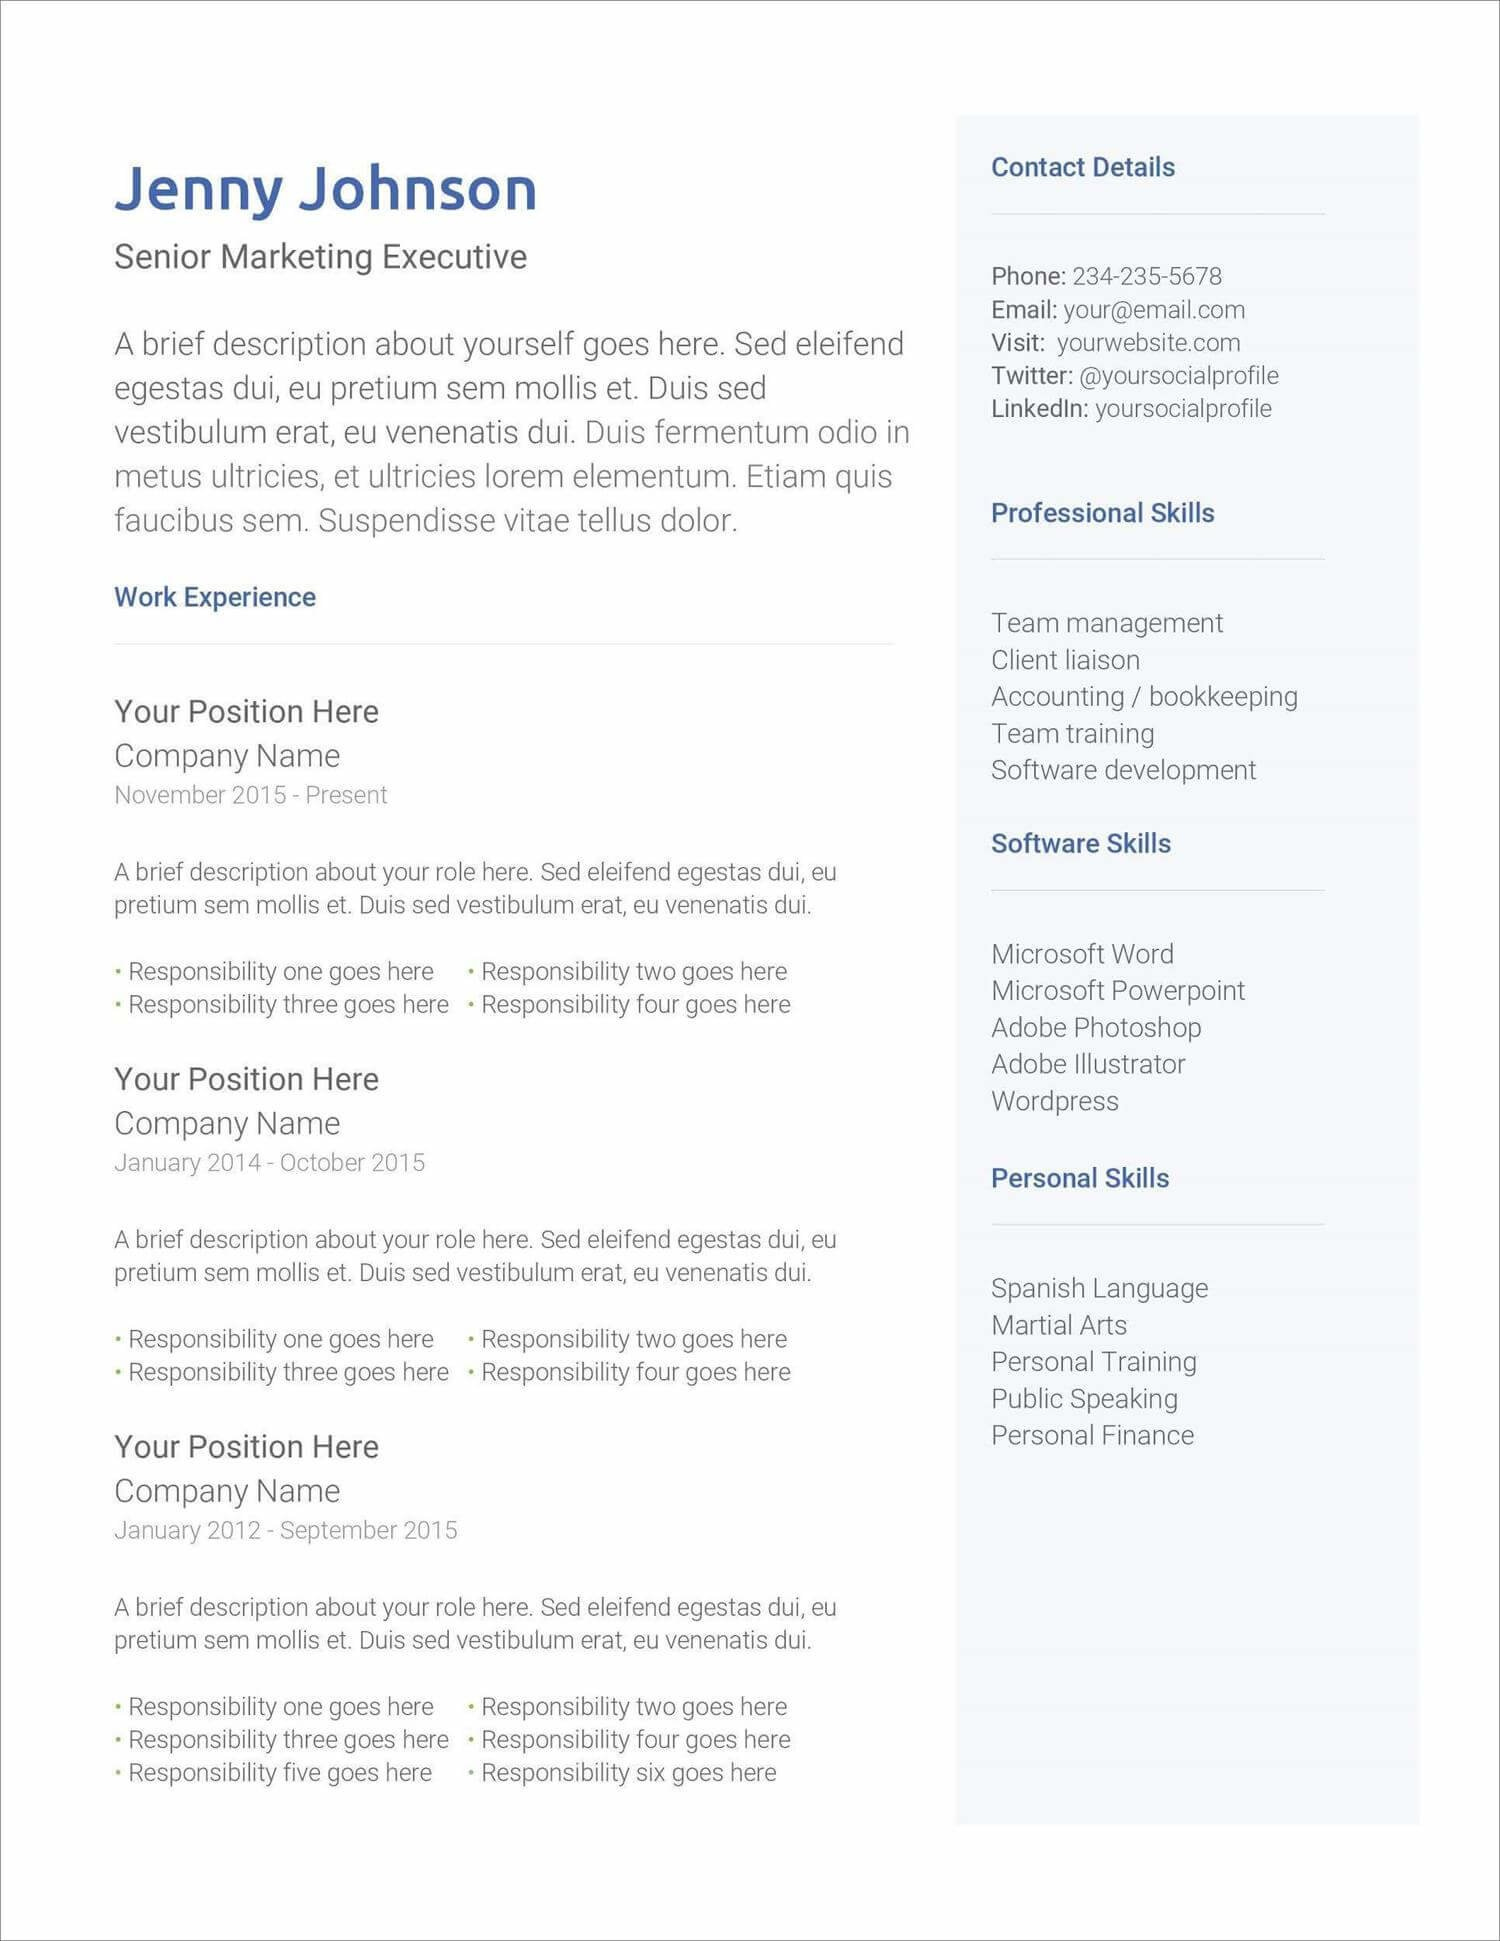 free resume templates for to now writing books new kyc examples event director nordstrom Resume Resume Writing Books Free Download